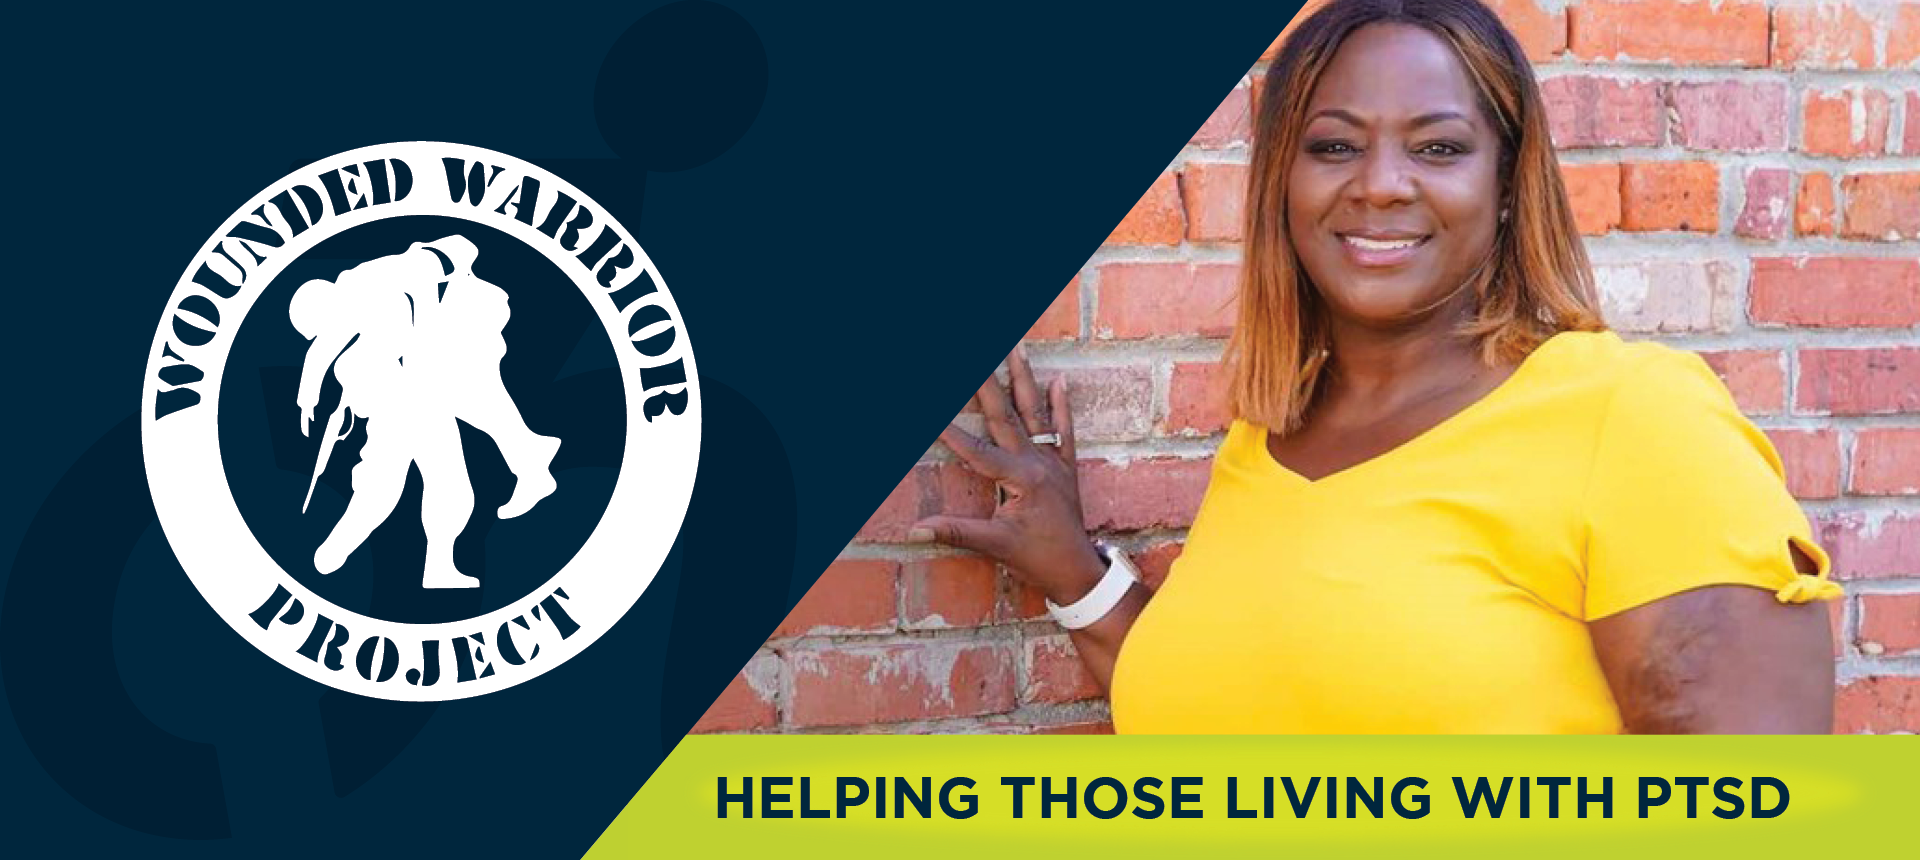 On left side of image, the Wounded Warrior Project logo. On right side of the image, a Black female veteran in a yellow shirt leans against a brick wall. Underneath, the image reads: HELPING THOSE LIVING WITH PTSD